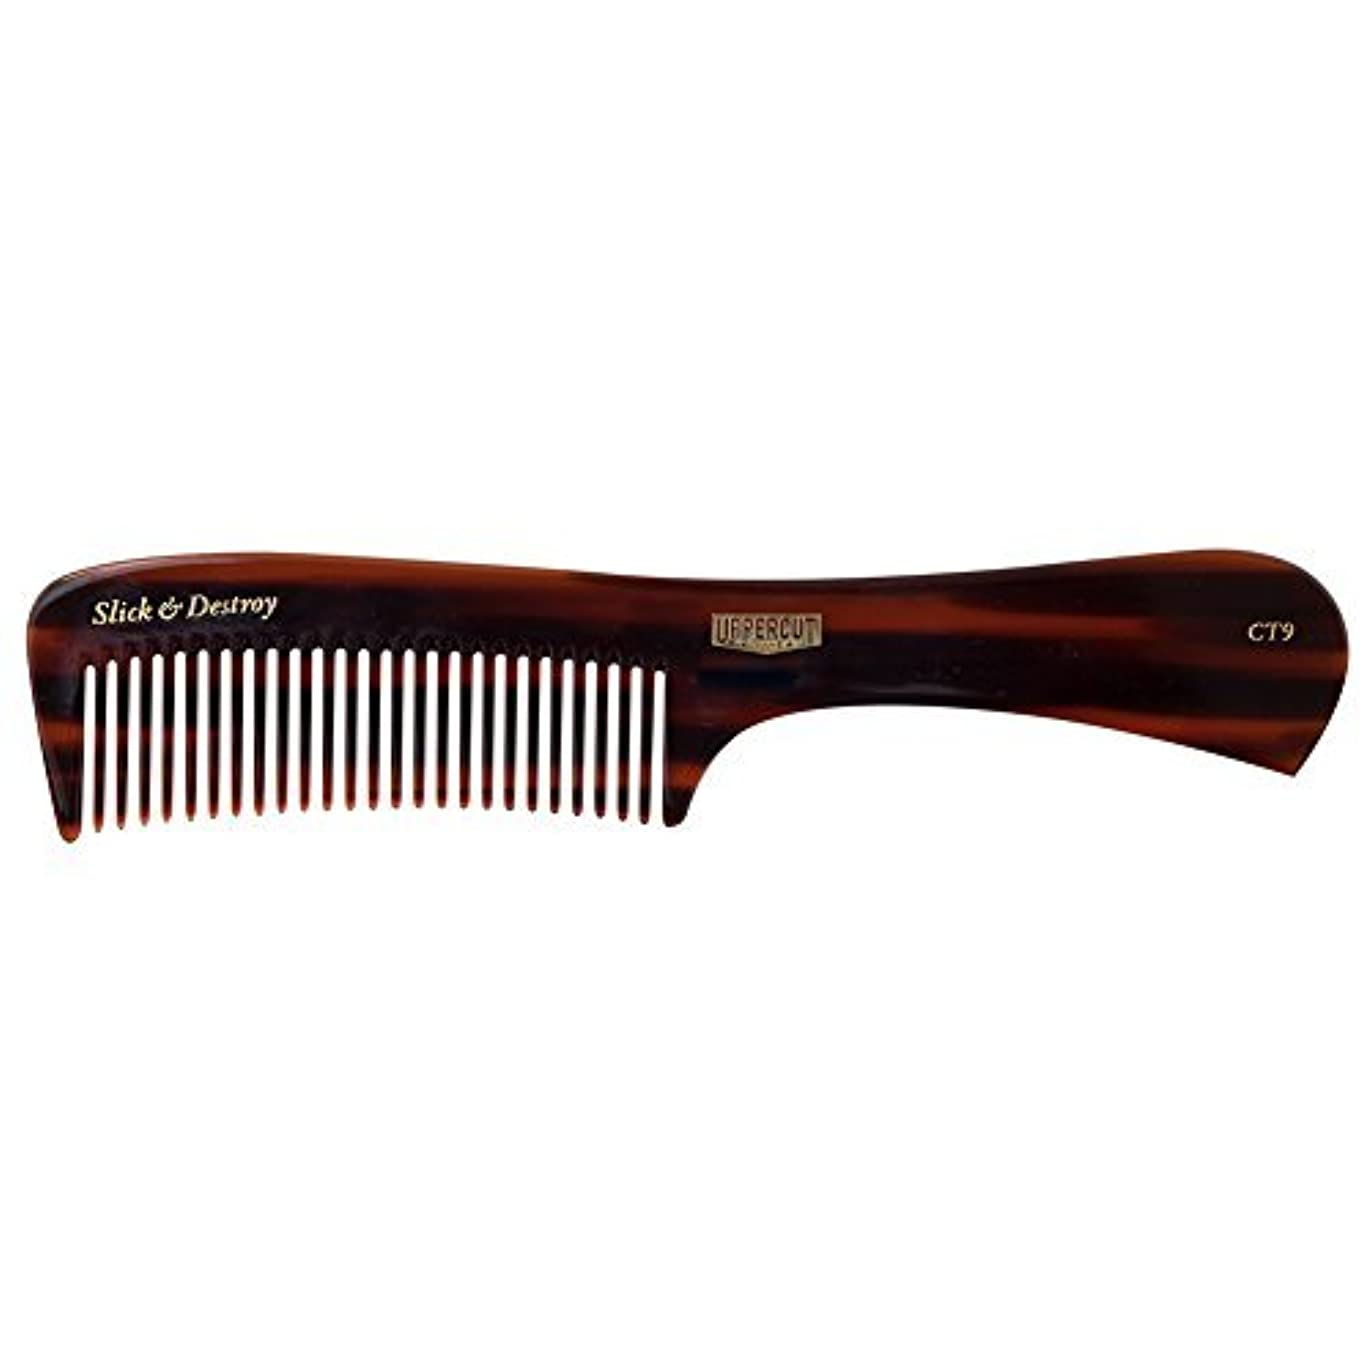 トリクル謝罪する底Uppercut Deluxe CT9 Tortoise Styling Comb - Minimal Static, Flexible - Slick & Destroy [並行輸入品]